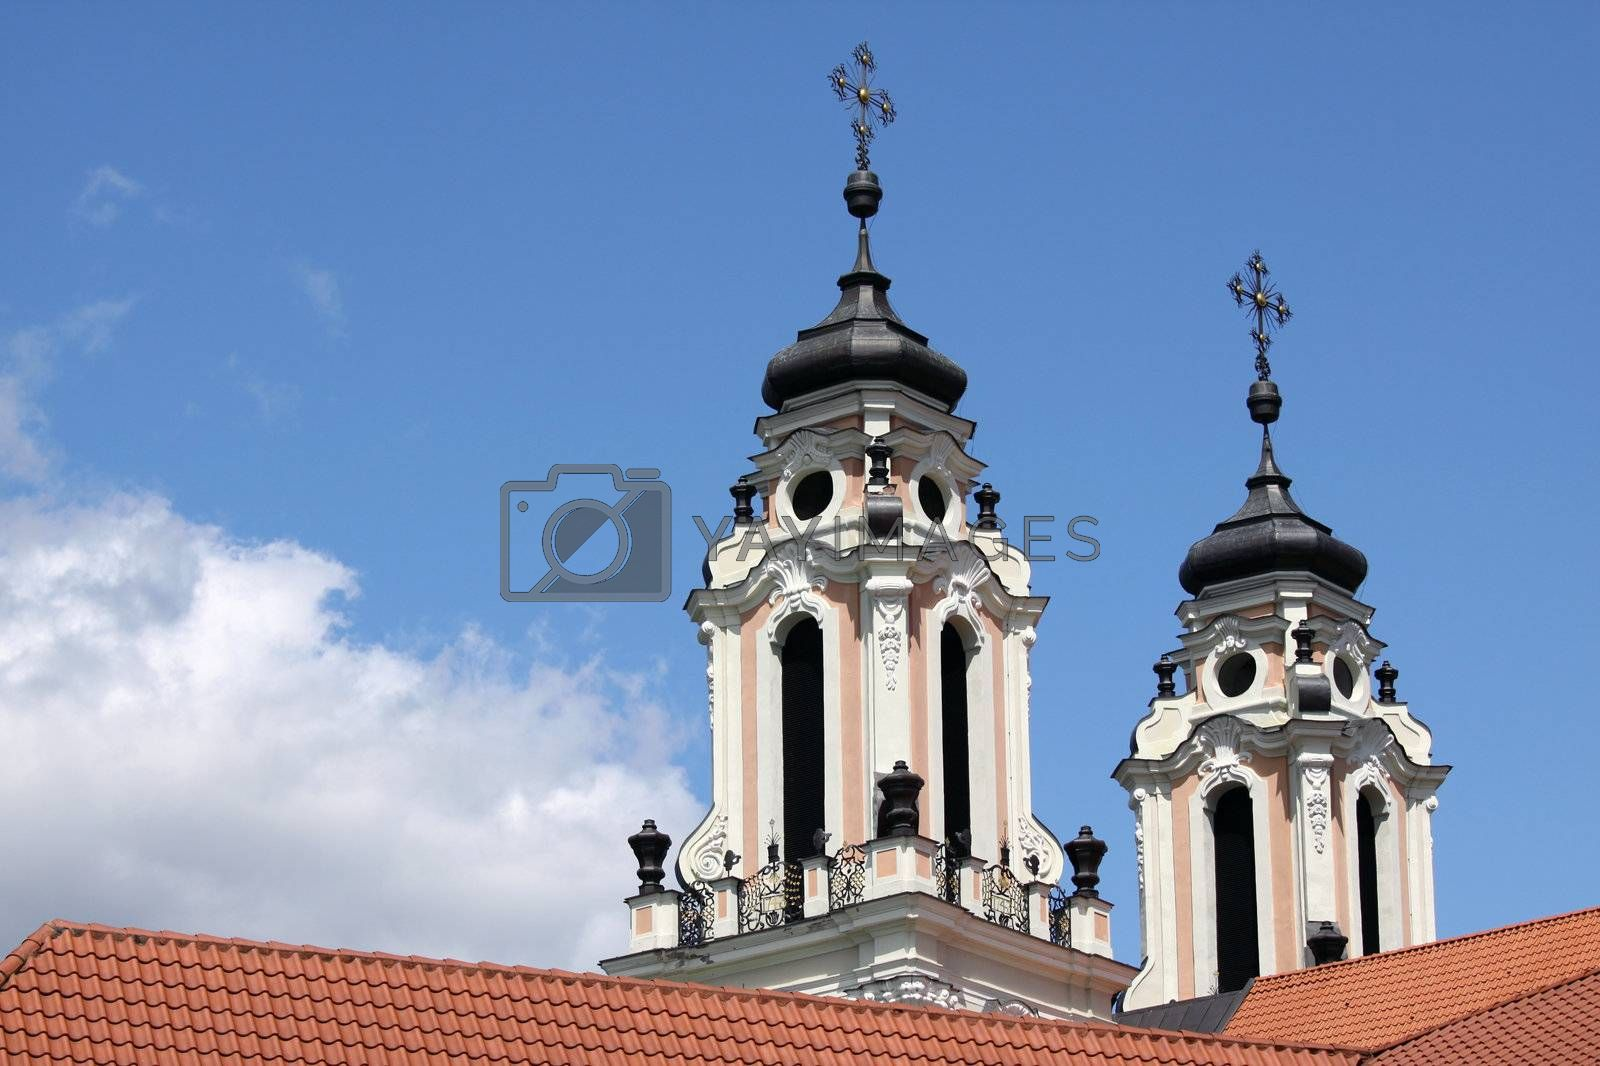 Two baroque church towers against clear blue sky in Vilnius, capital of Lithuania